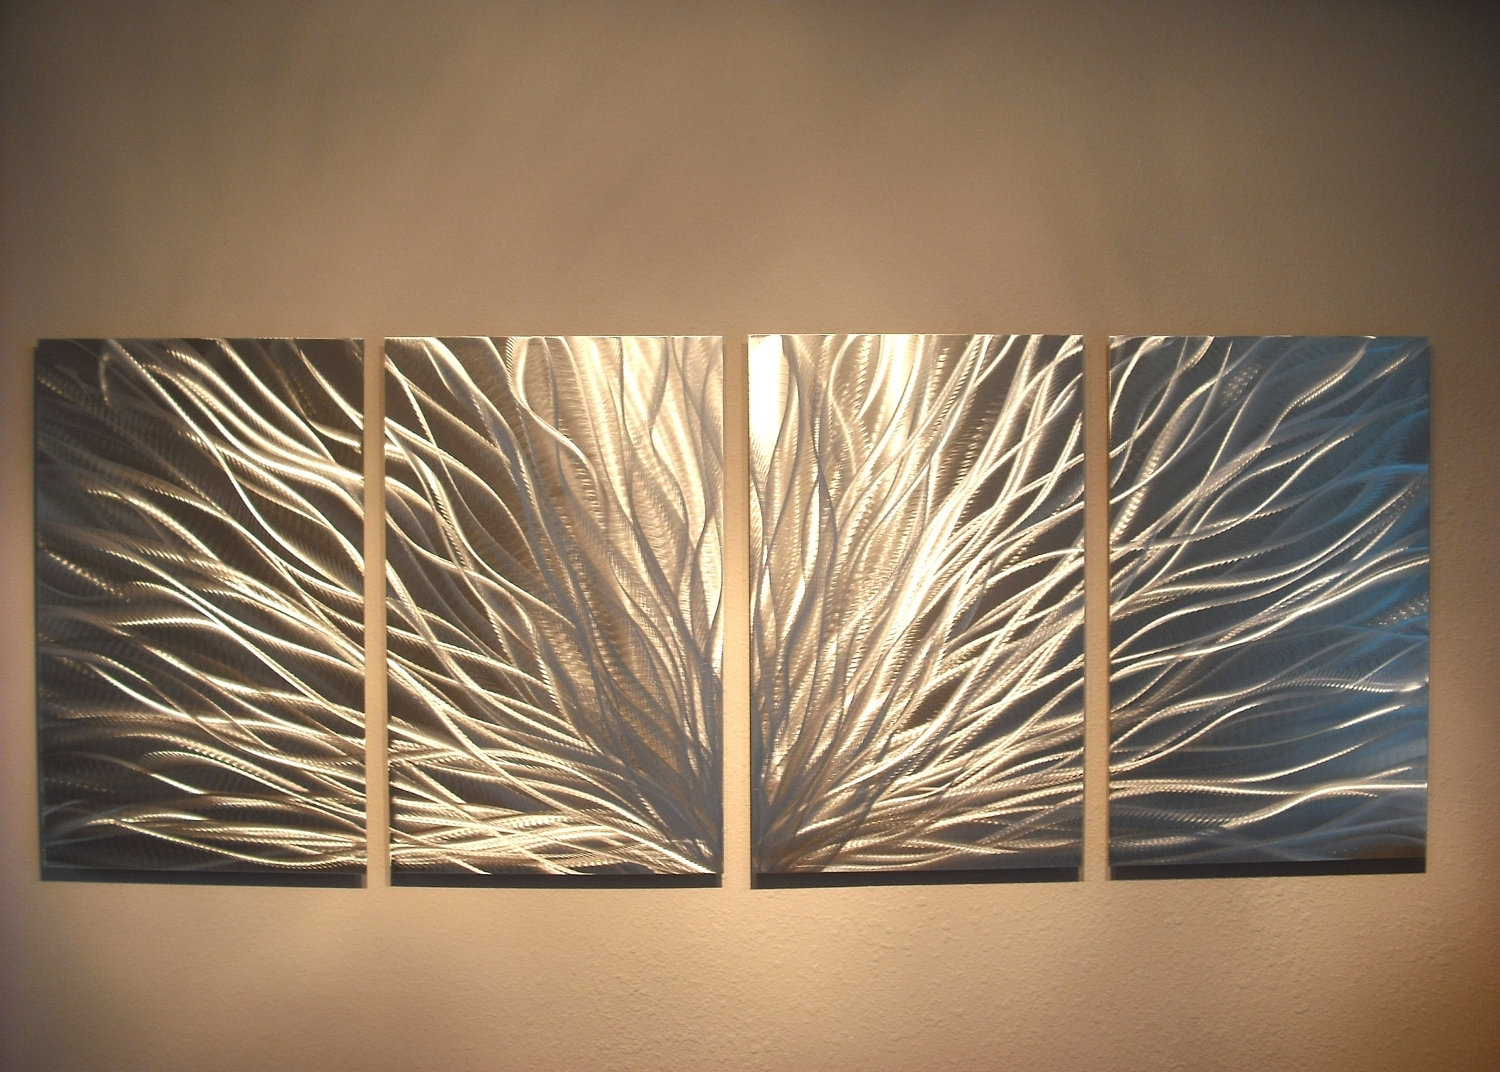 Radiance - Abstract Metal Wall Art Contemporary Modern Decor pertaining to Modern Metal Wall Art (Image 15 of 20)